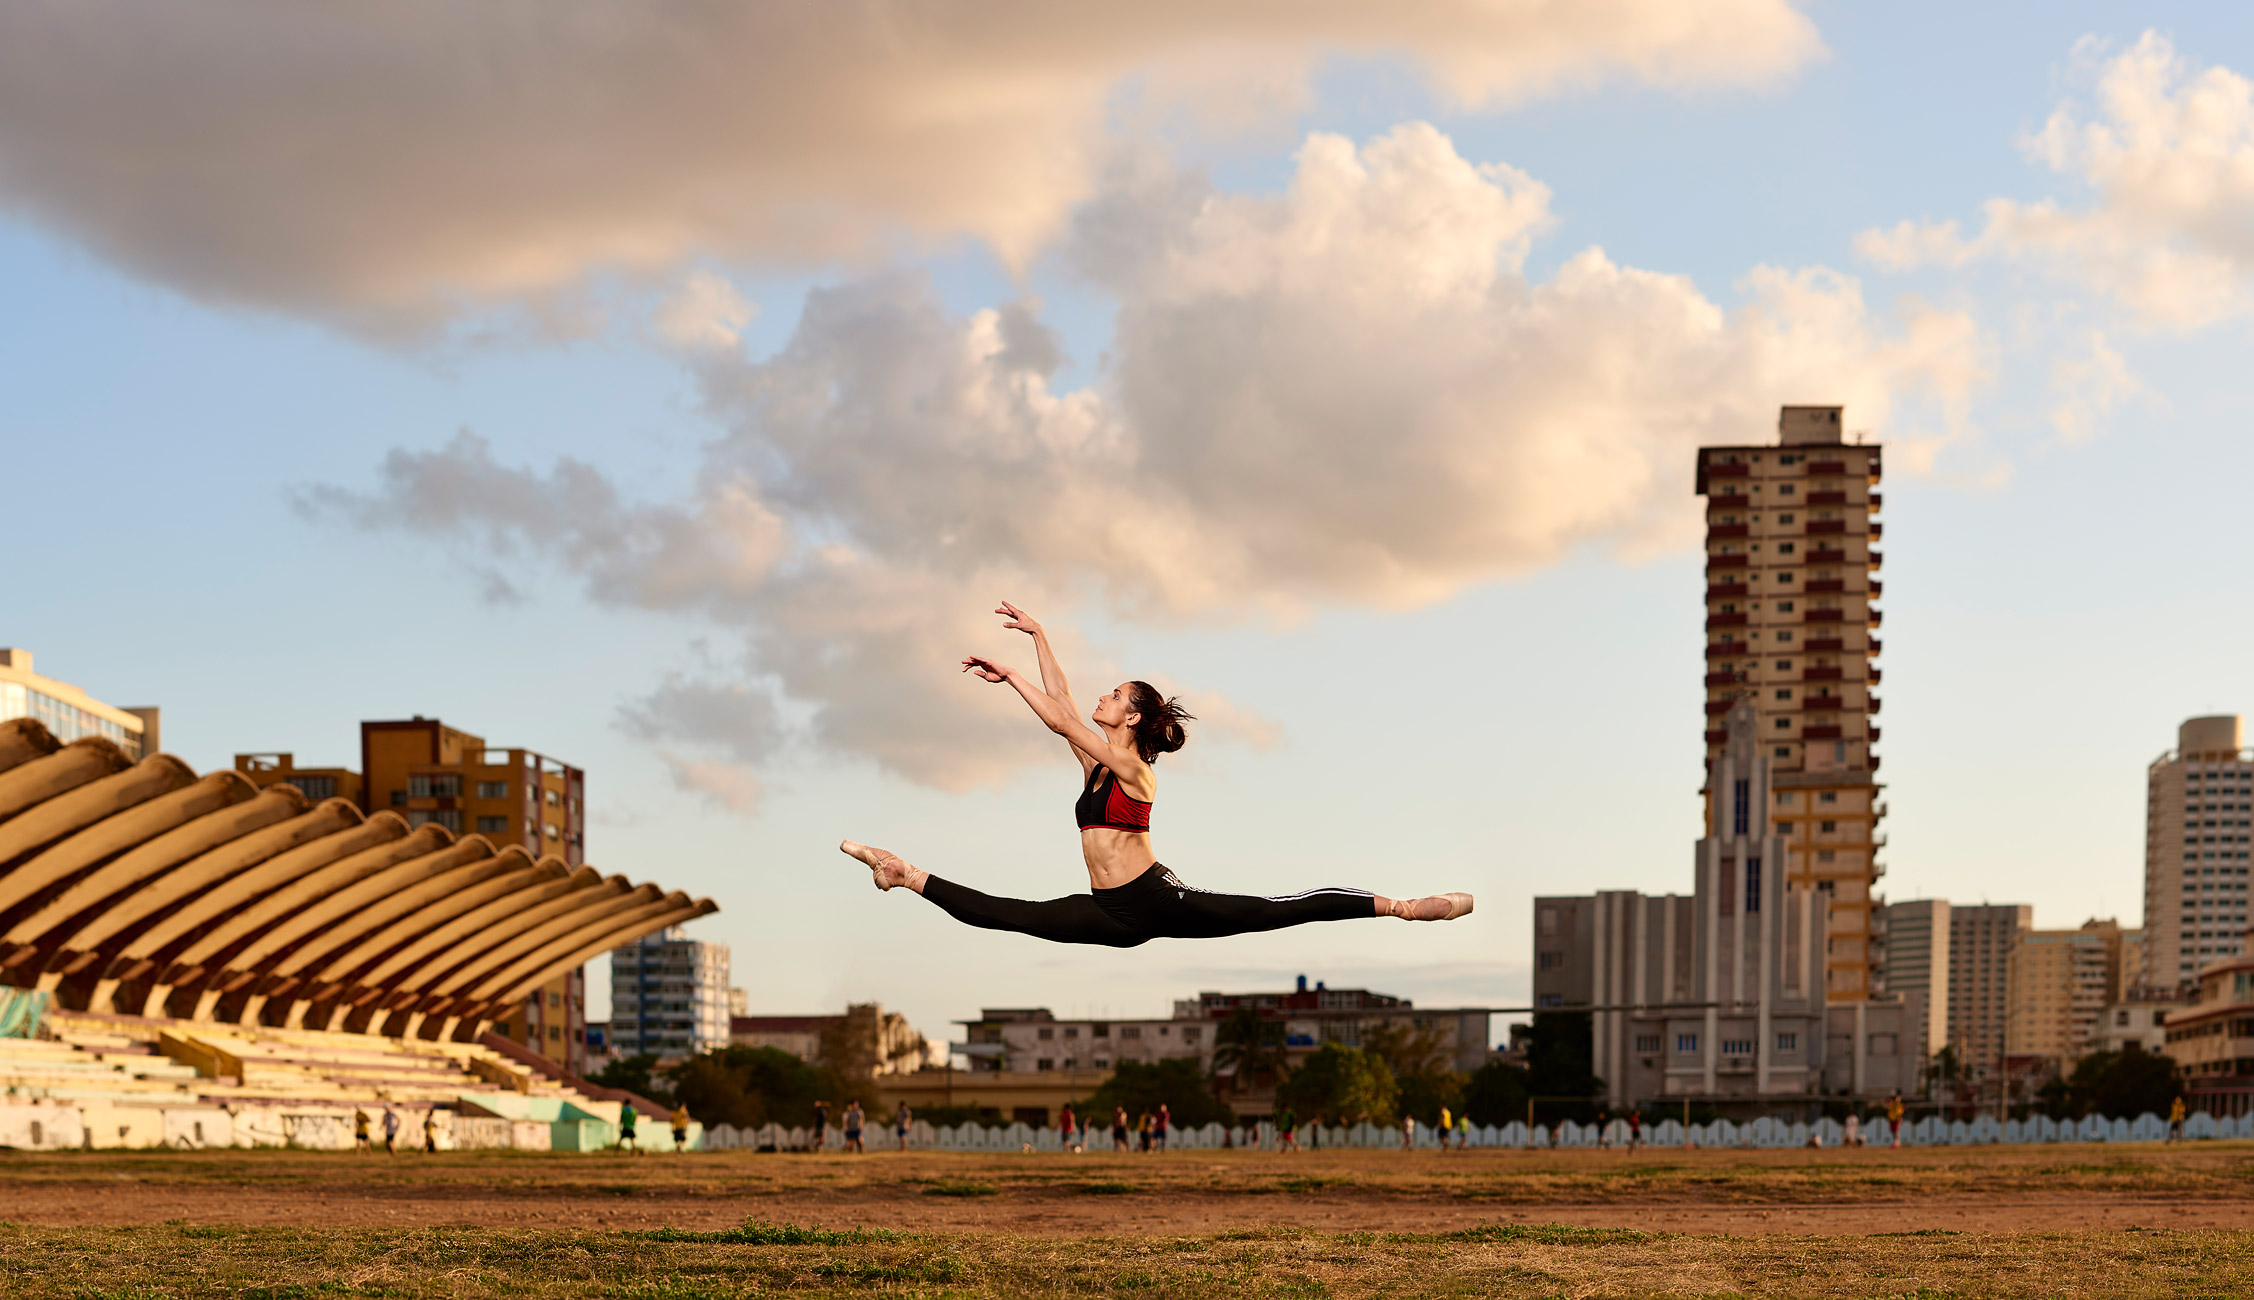 Gabriella jumping with Jose Marti Stadium, Cuba in background.